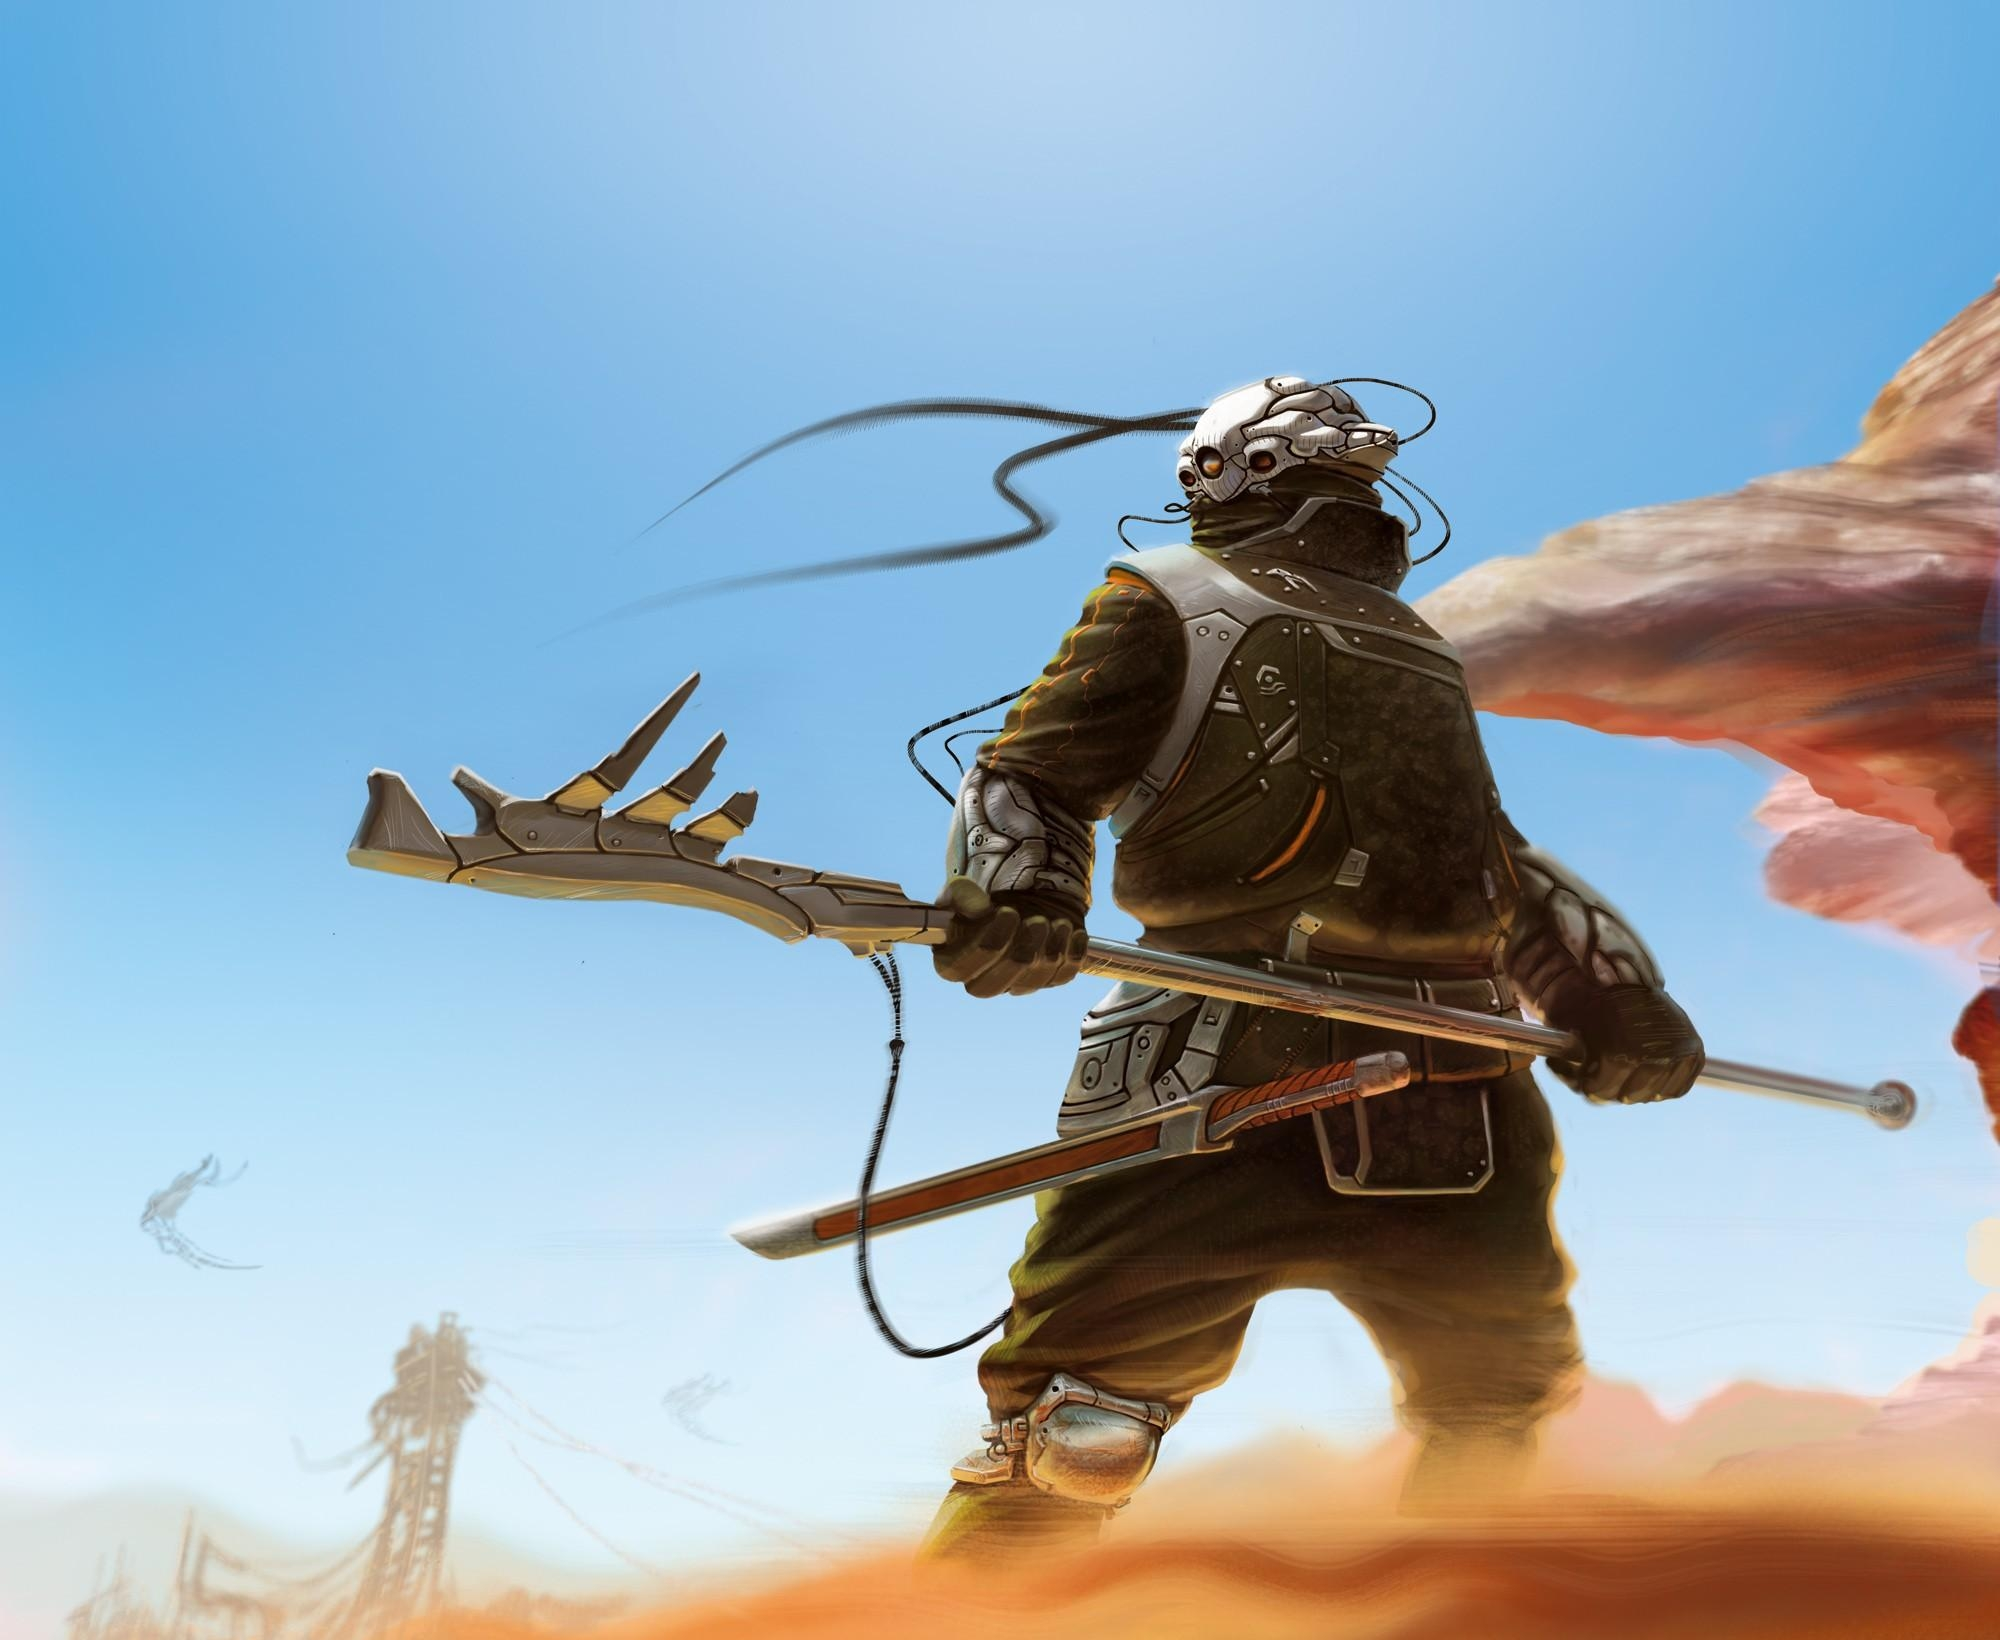 124065 download wallpaper Fantasy, Sky, Sand, Weapon, Cyborg screensavers and pictures for free